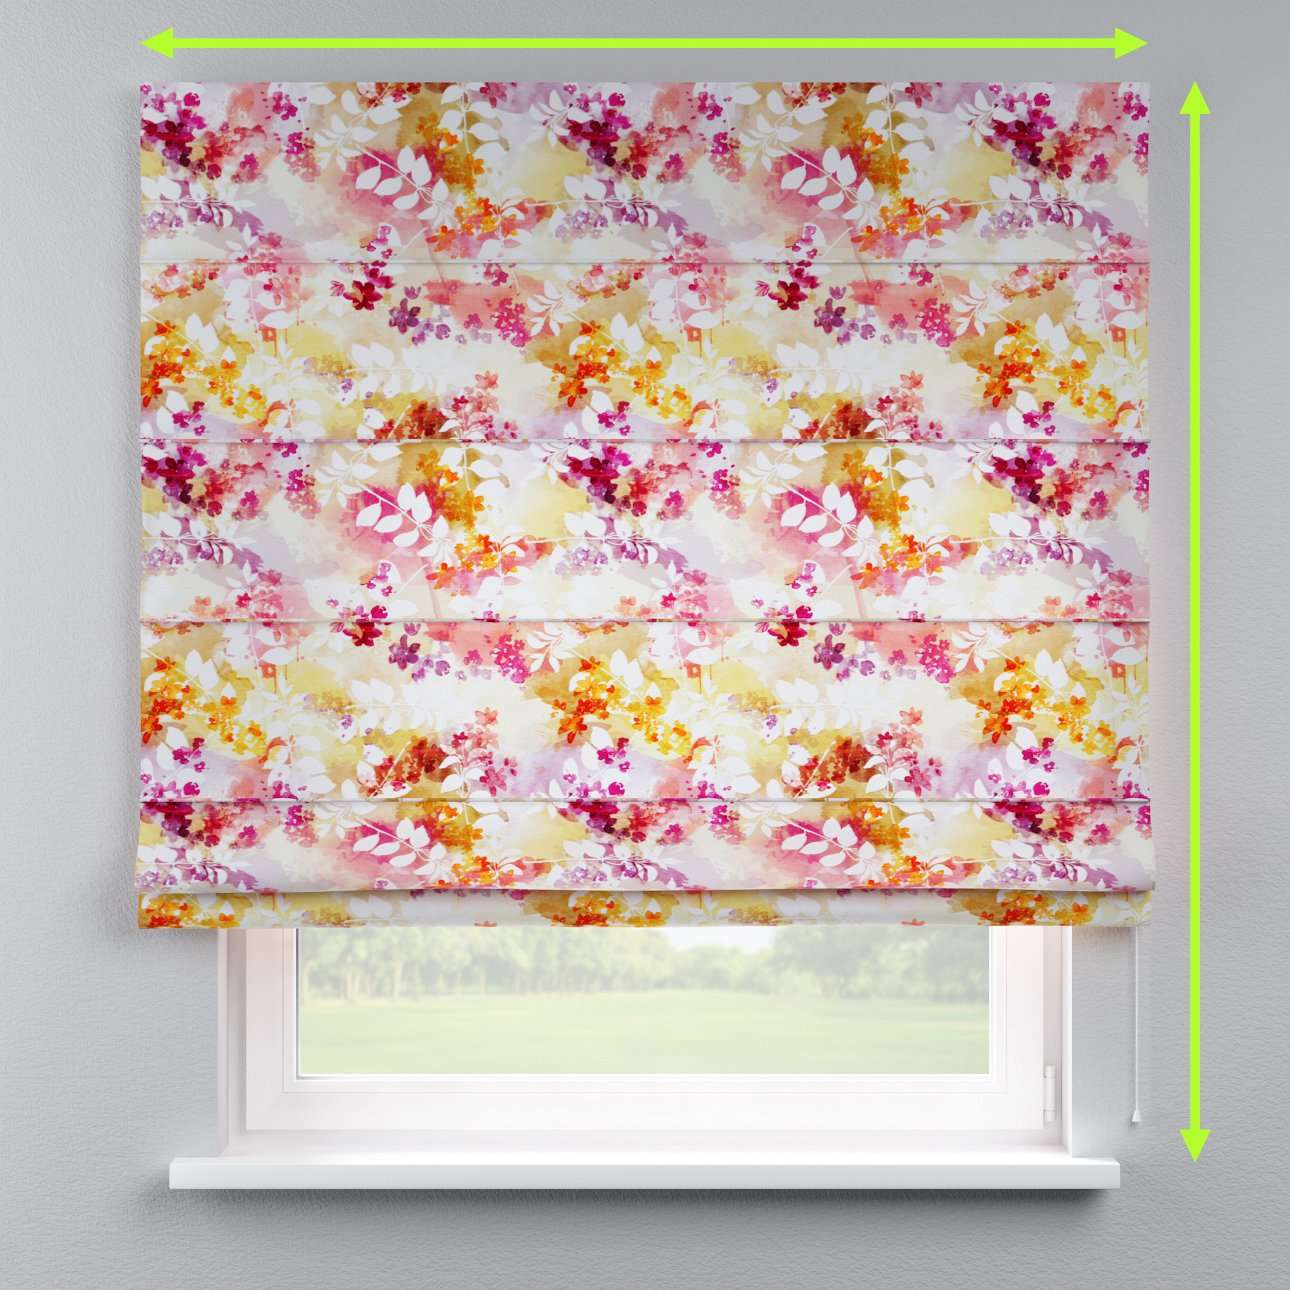 Capri roman blind in collection Monet, fabric: 140-05